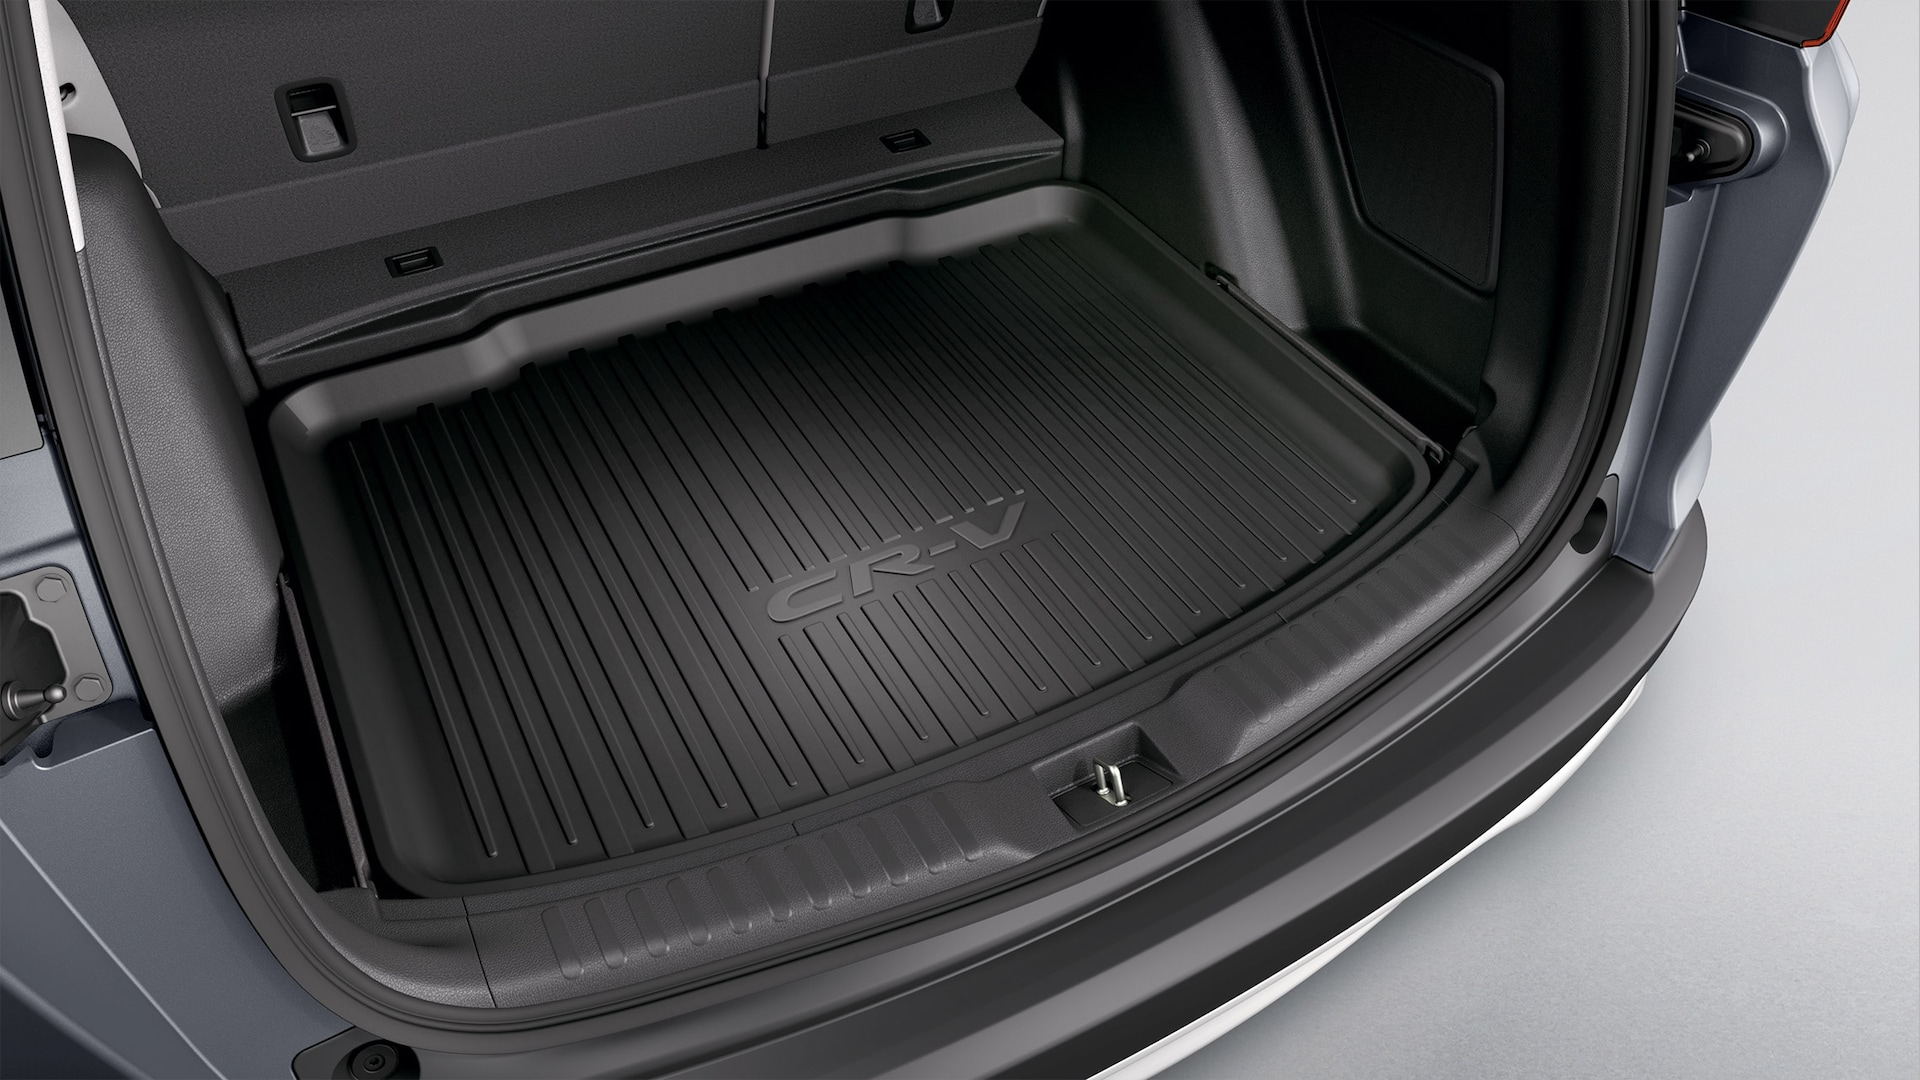 Interior view of 2020 Honda CR-V with Honda Genuine Accessory cargo tray.